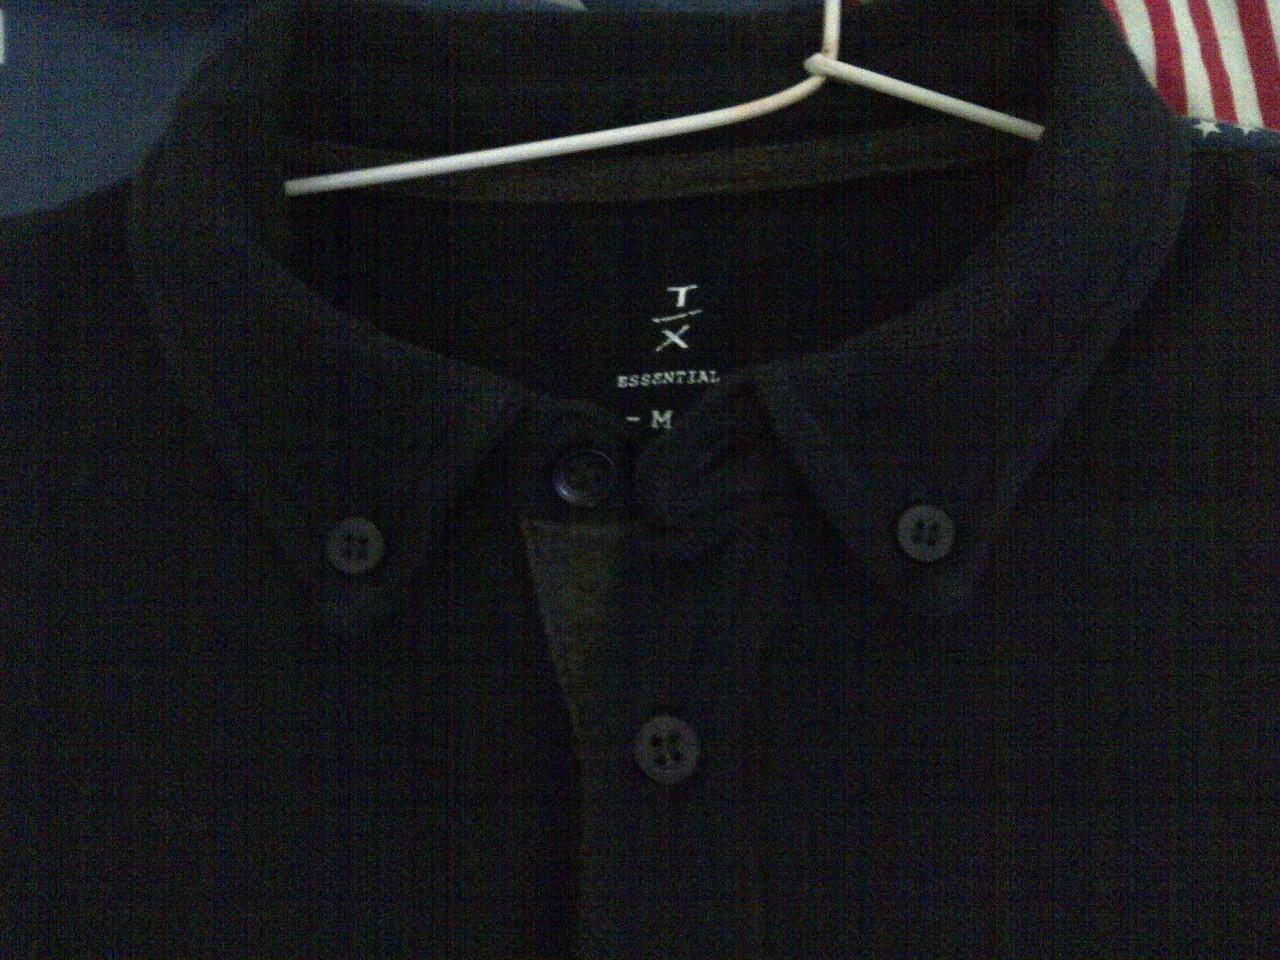 jual polo shirt the executive. simple and classic but still nice.